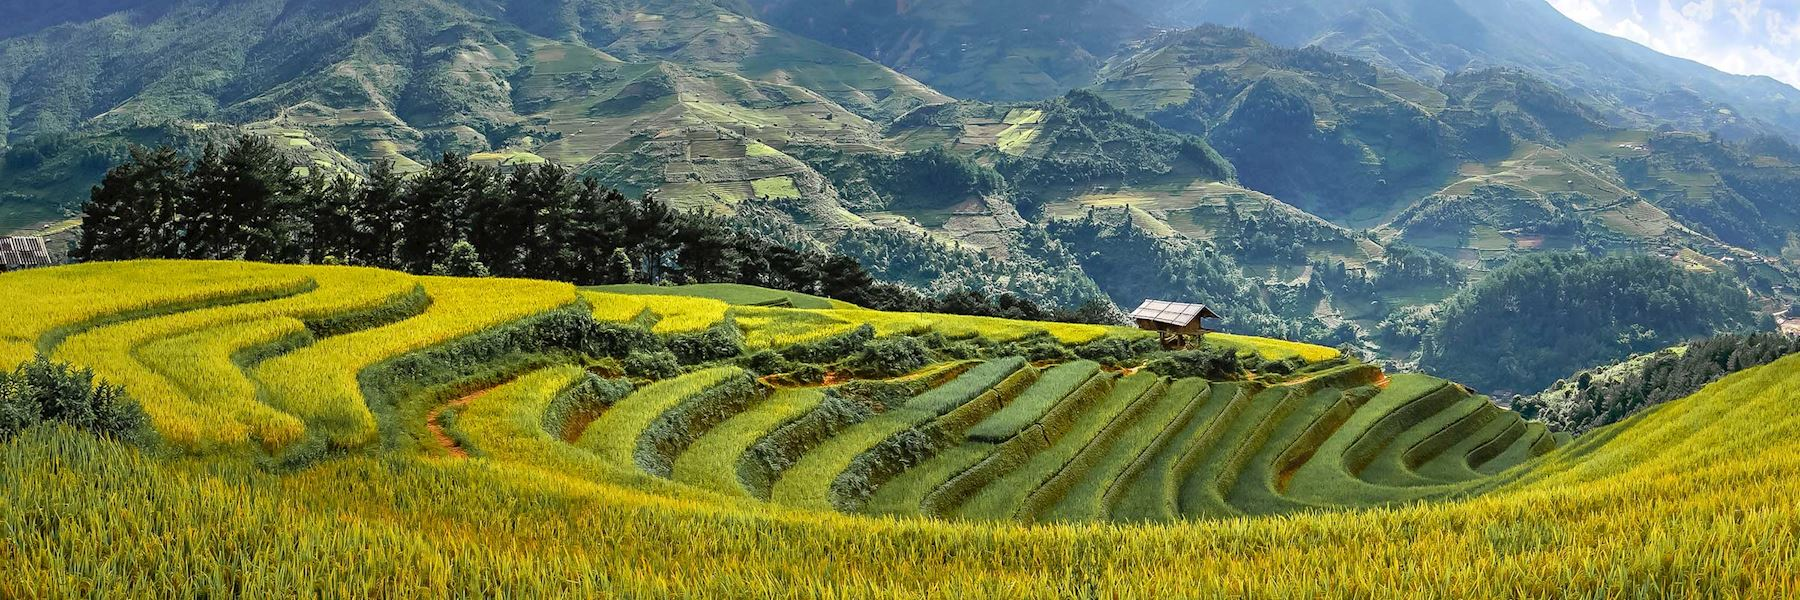 Visit Mu Cang Chai On A Trip To Vietnam Audley Travel